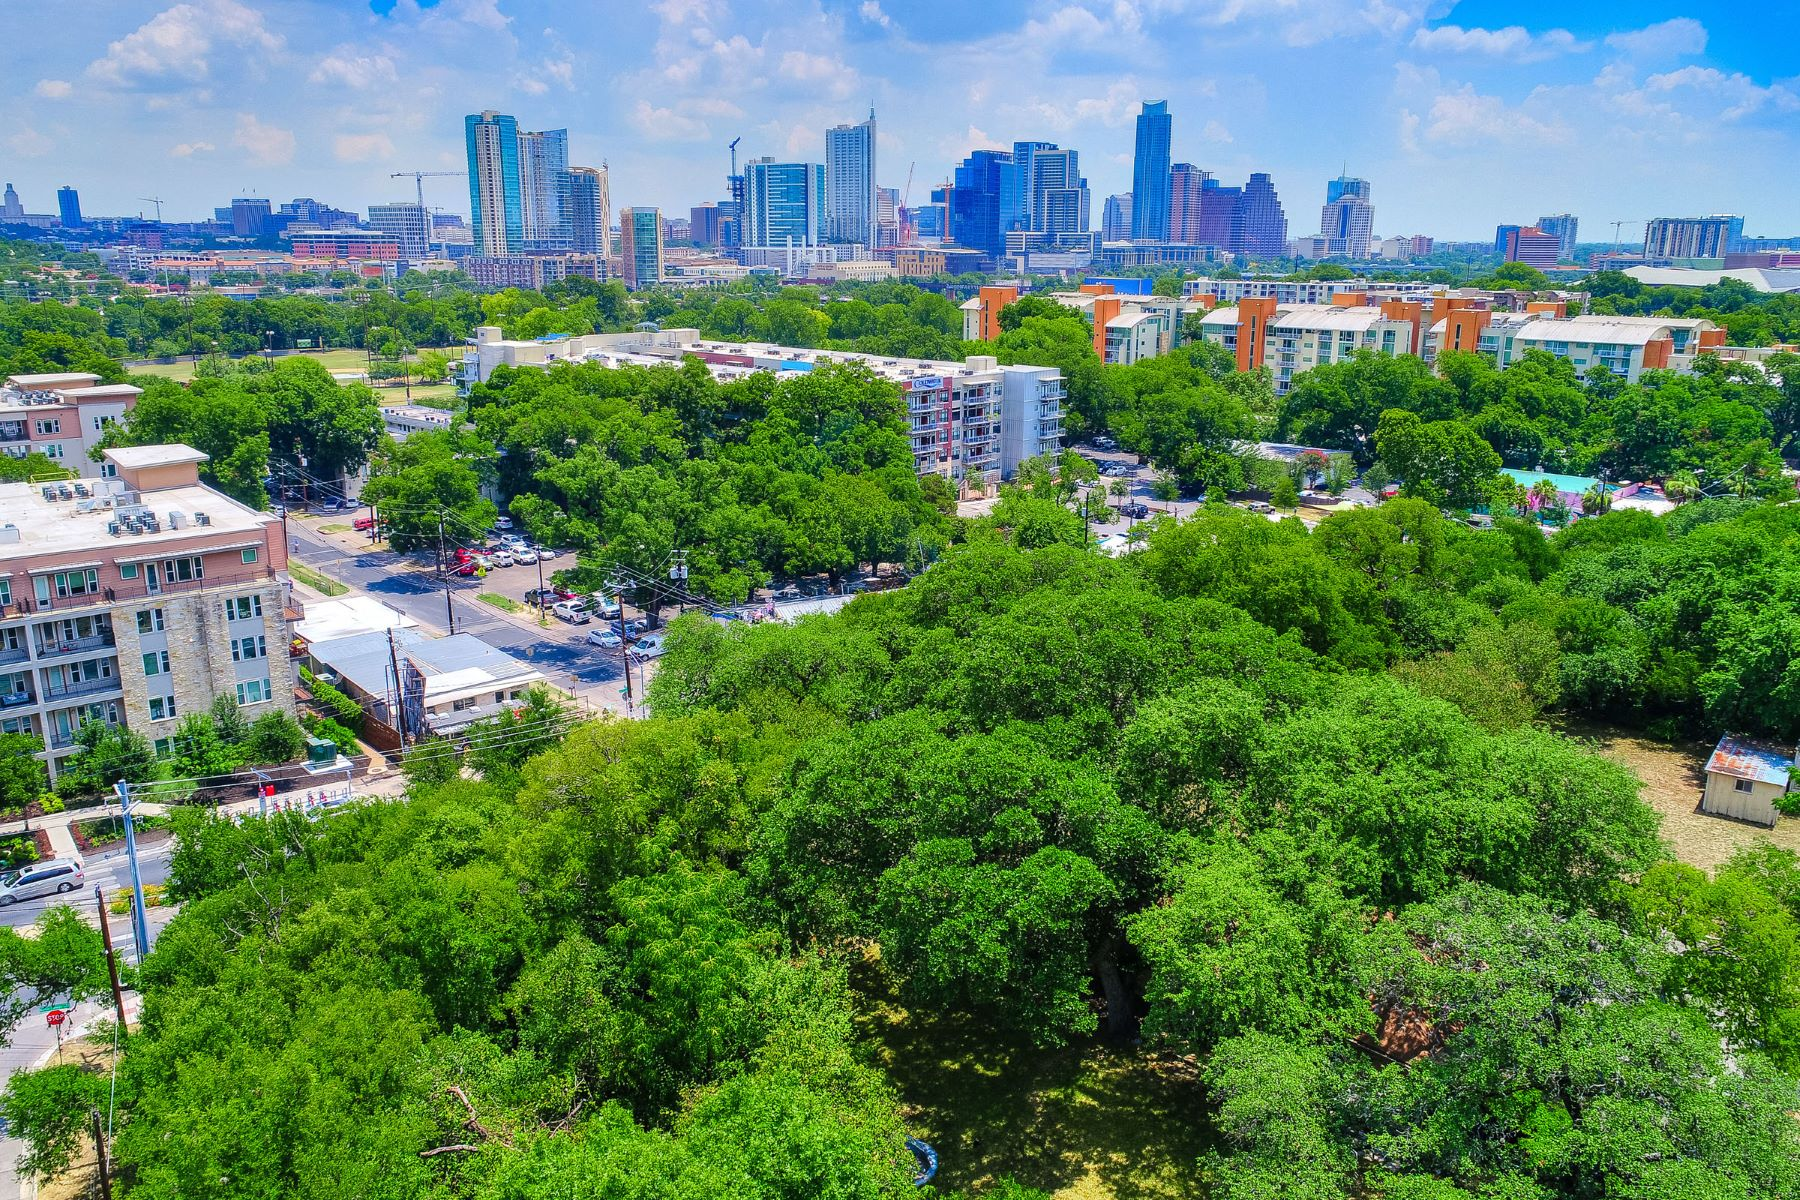 Additional photo for property listing at Austin's Most Spectacular Land Opportunity 511 Barton Blvd Austin, Texas 78704 Estados Unidos